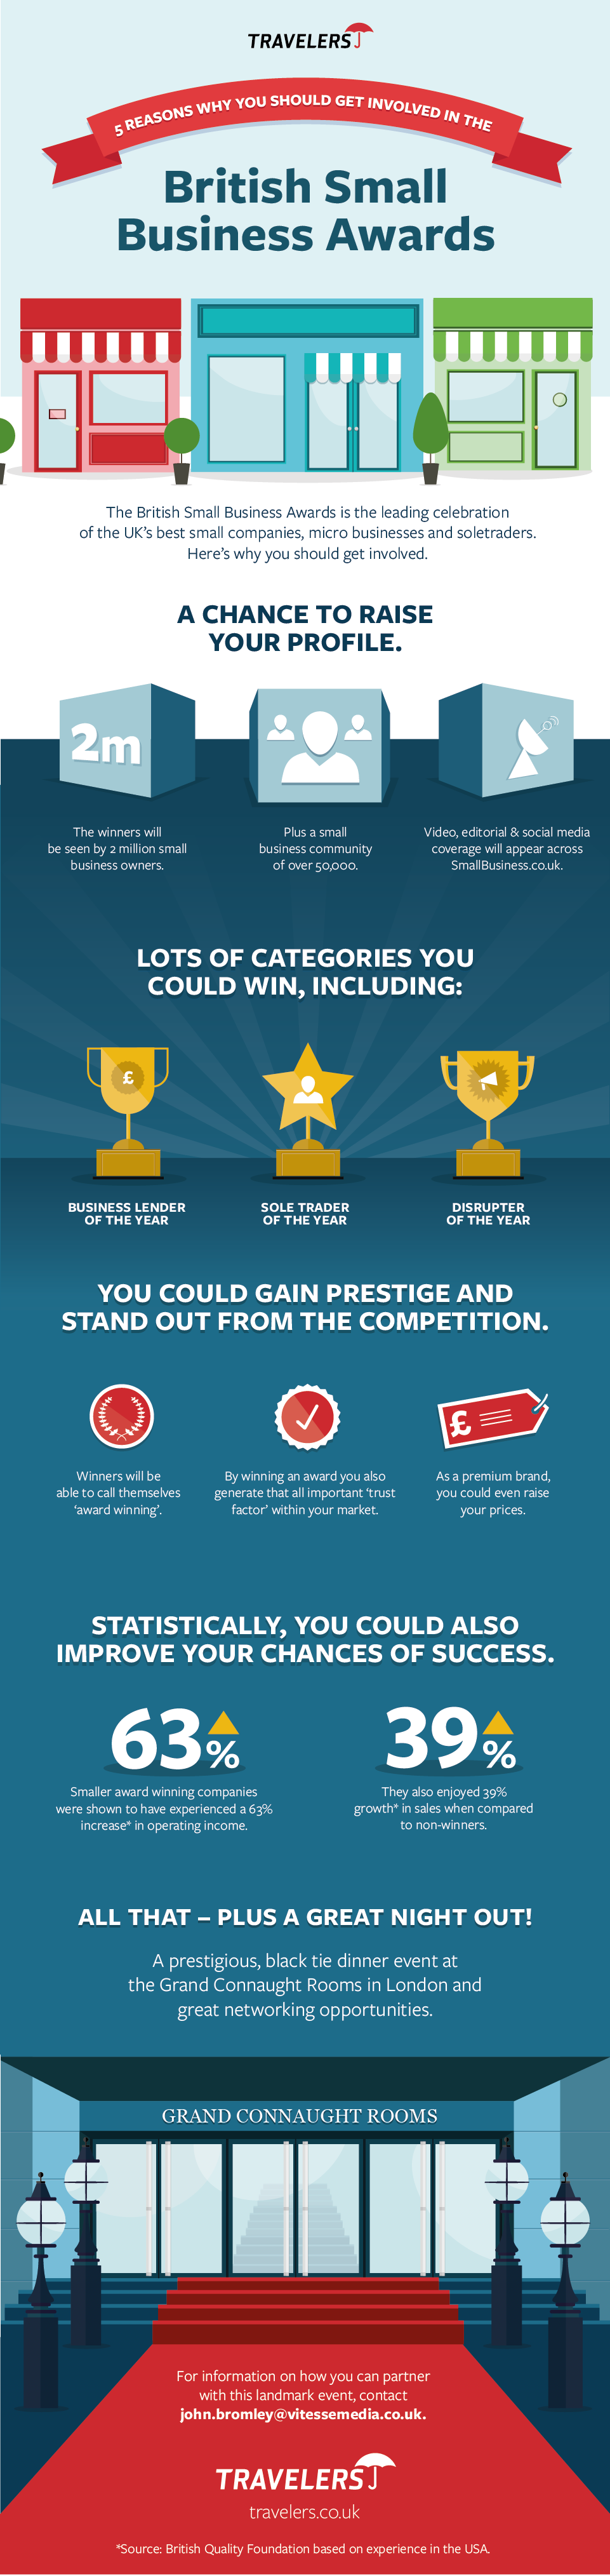 British Small Business Awards infographic